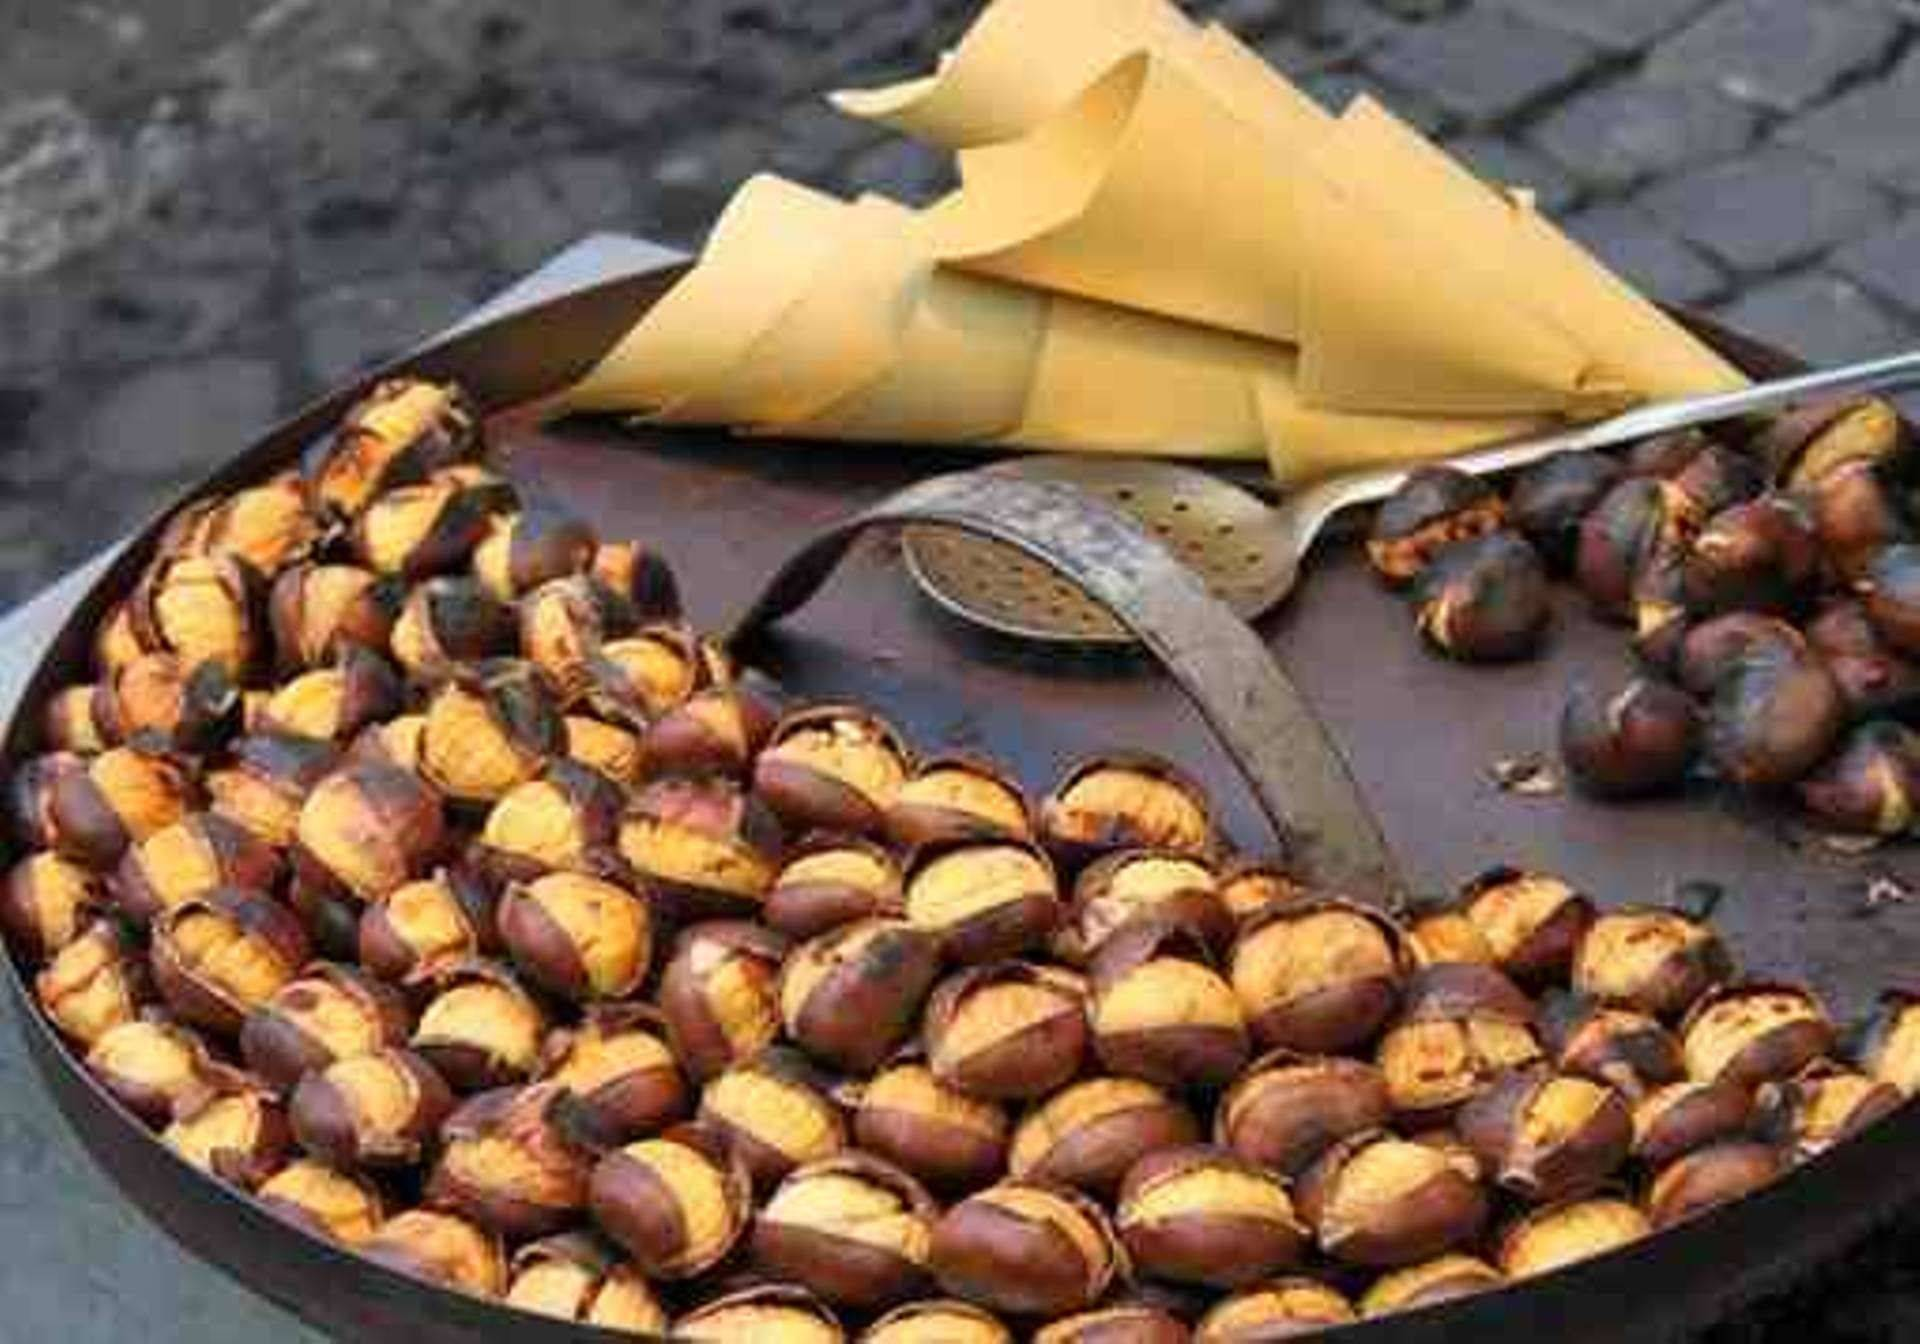 chesnuts, the Greek winter taste in every corner in the Street